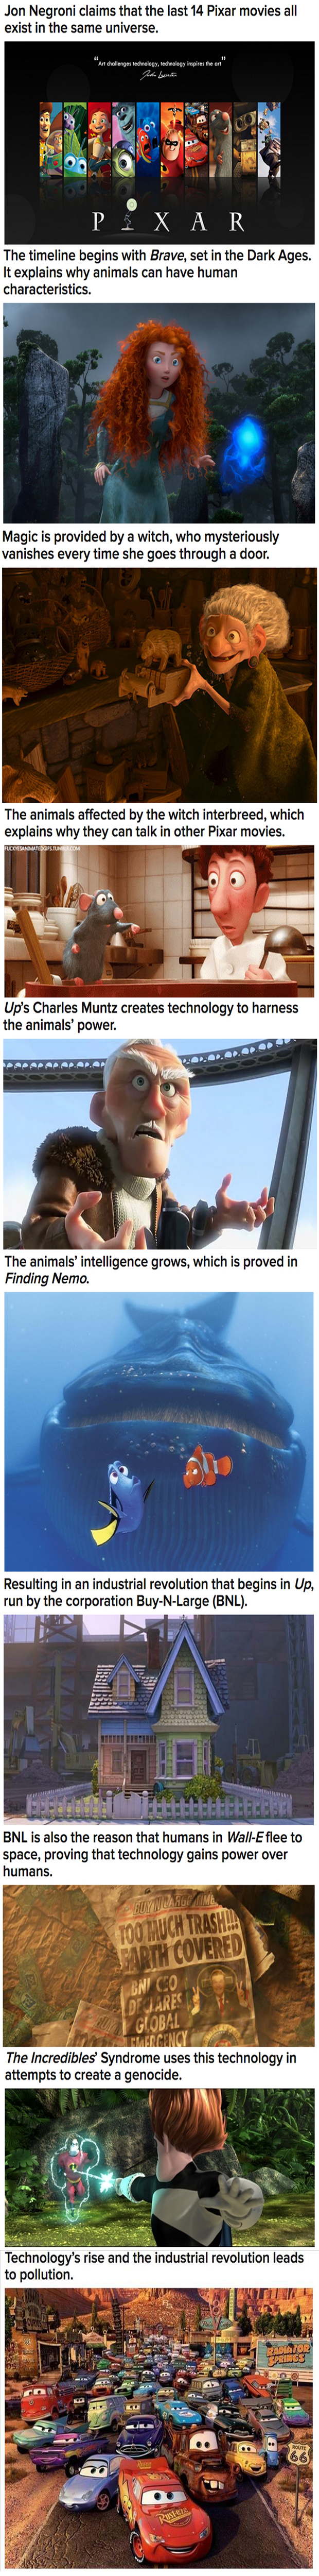 Theory of the Pixar Universe infographic